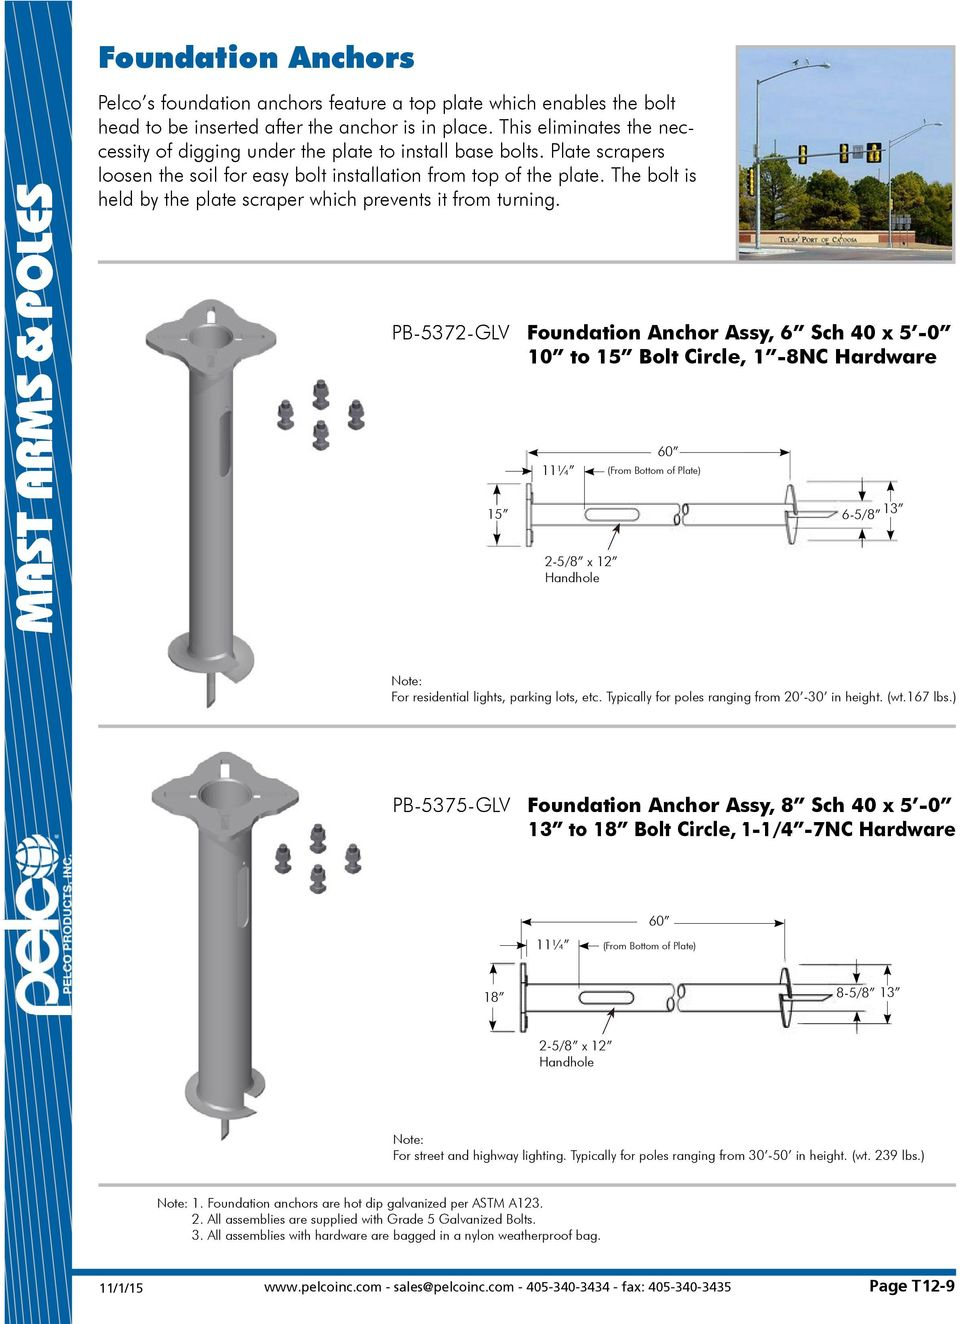 Mast Arms Poles Ornamental Pole Top Bases Pdf Parking Lot Light Wiring Diagram The Bolt Is Held By Plate Scraper Which Prevents It From Turning